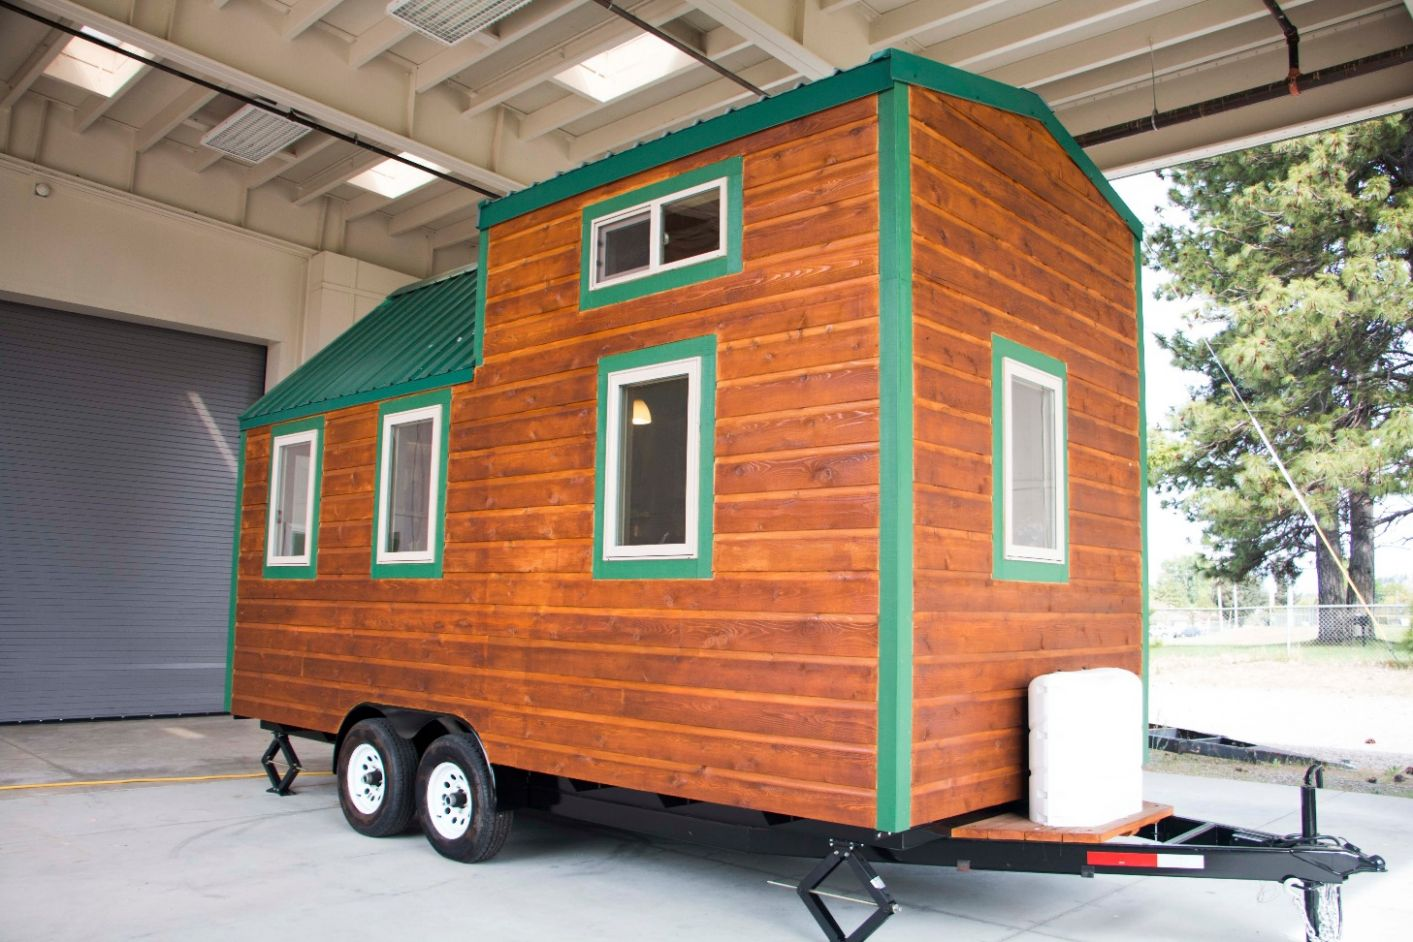 Weed High School's Tiny House Project